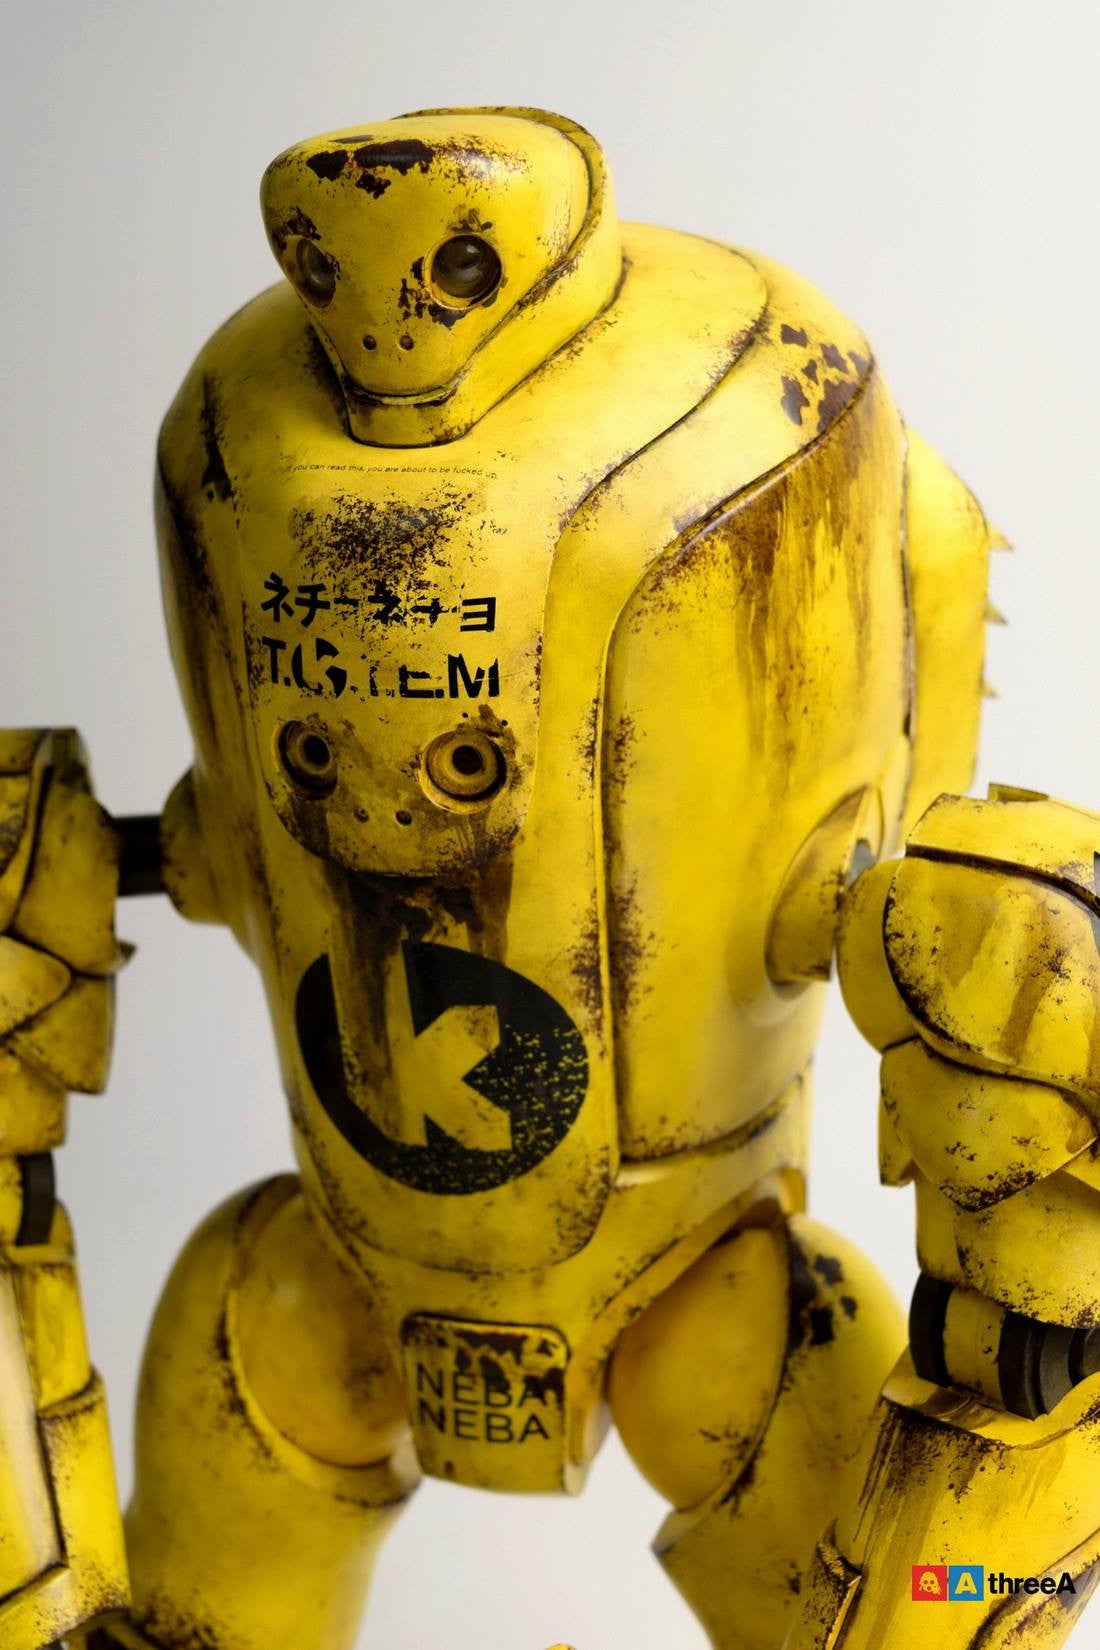 ThreeA - Evenfall - 1/6 T.O.T.E.M Thug Pugillo - K Striker-047 (Yellow) - Marvelous Toys - 7